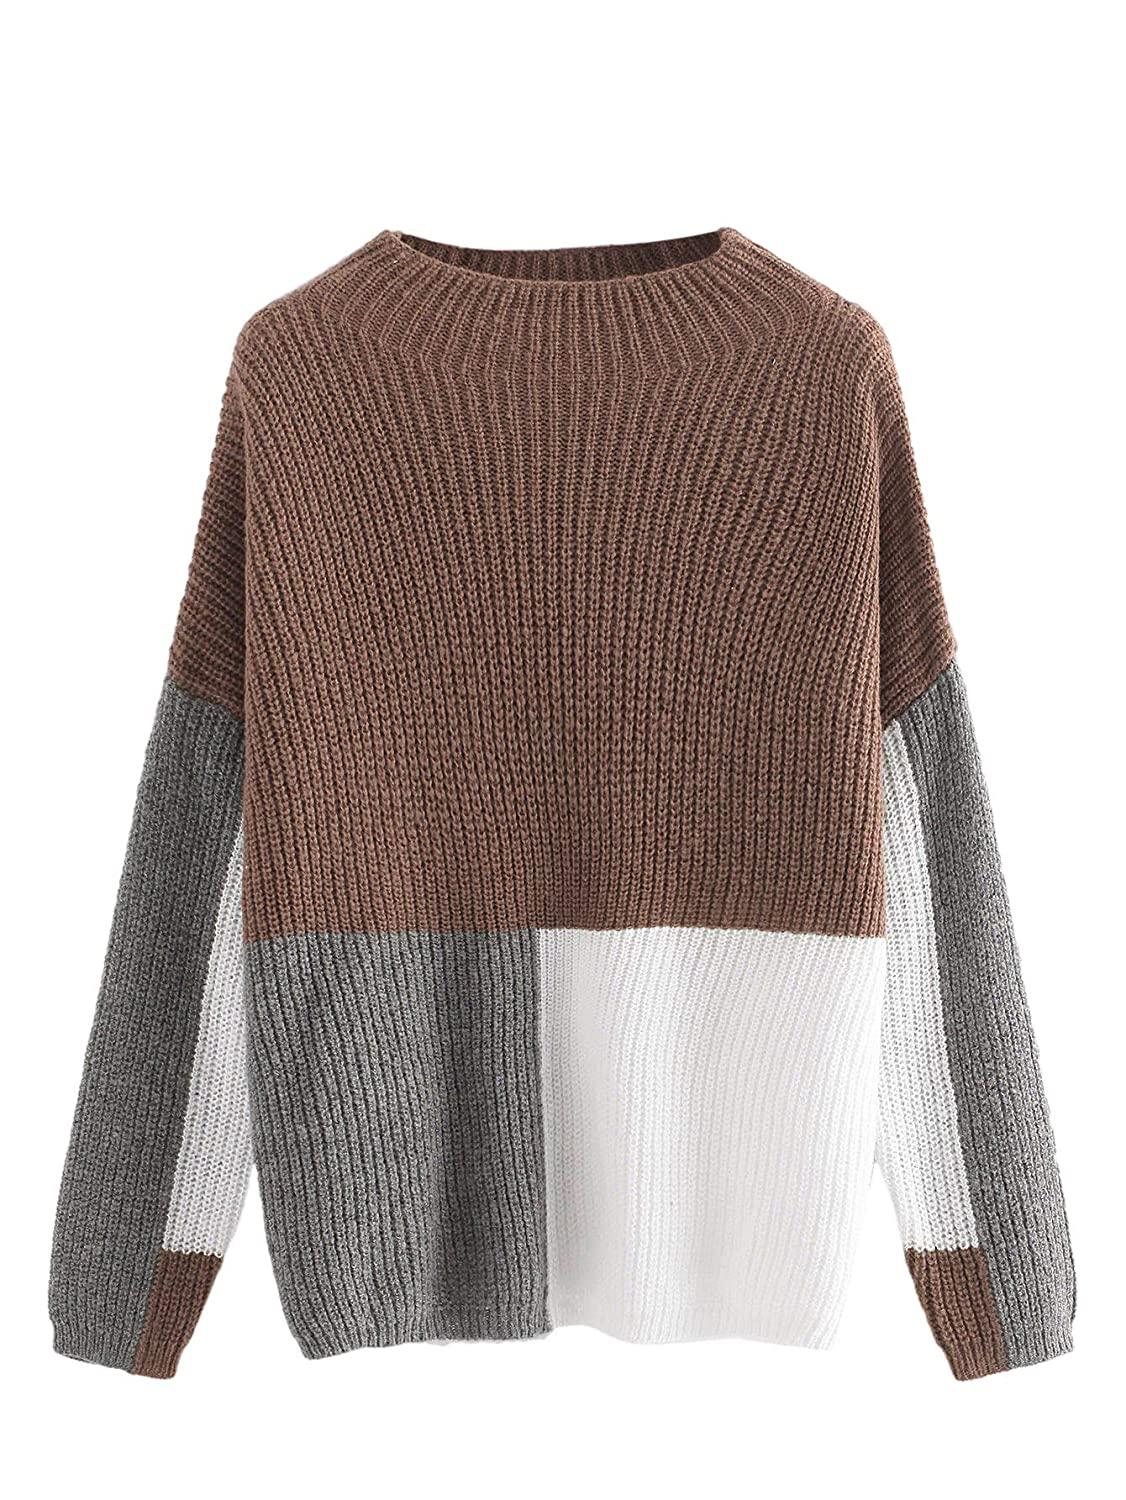 Milumia Women's Drop Shoulder Color Block Textured Jumper Casual Sweater